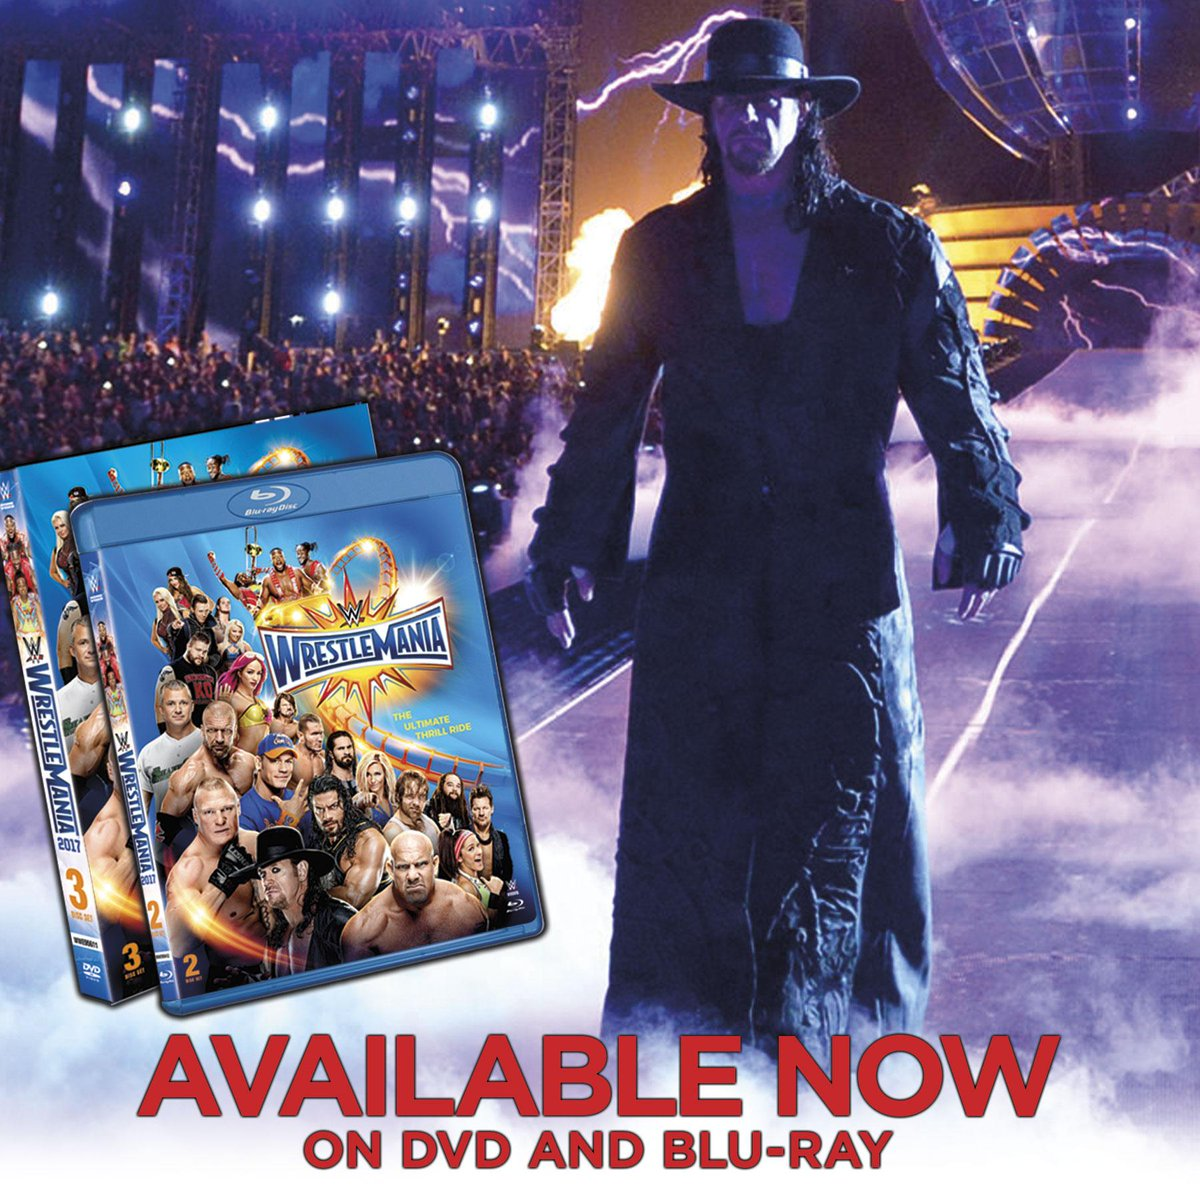 Bring home all the action of @WrestleMania 33 on DVD & Blu-Ray now! #WrestleMania pic.twitter.com/a5TRP4alHO